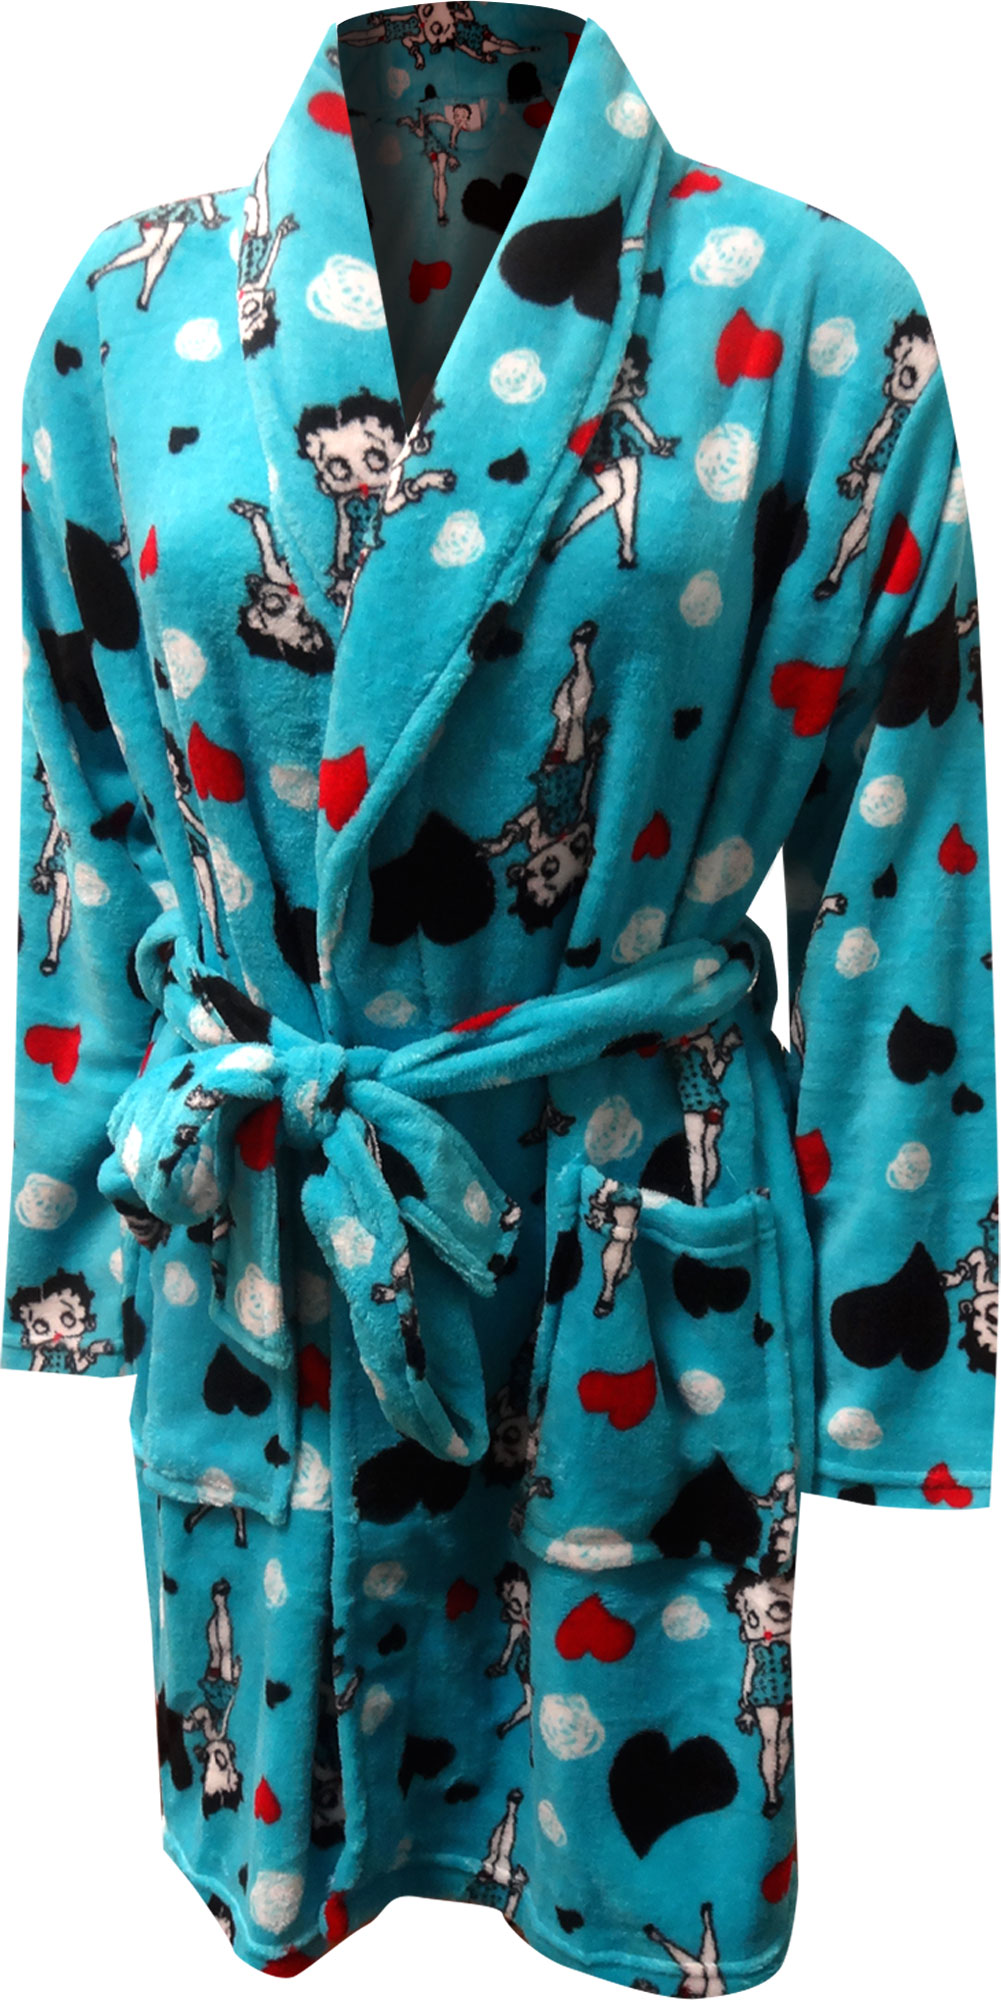 Image of Betty Boop Turquoise Super Soft Plush Robe for women